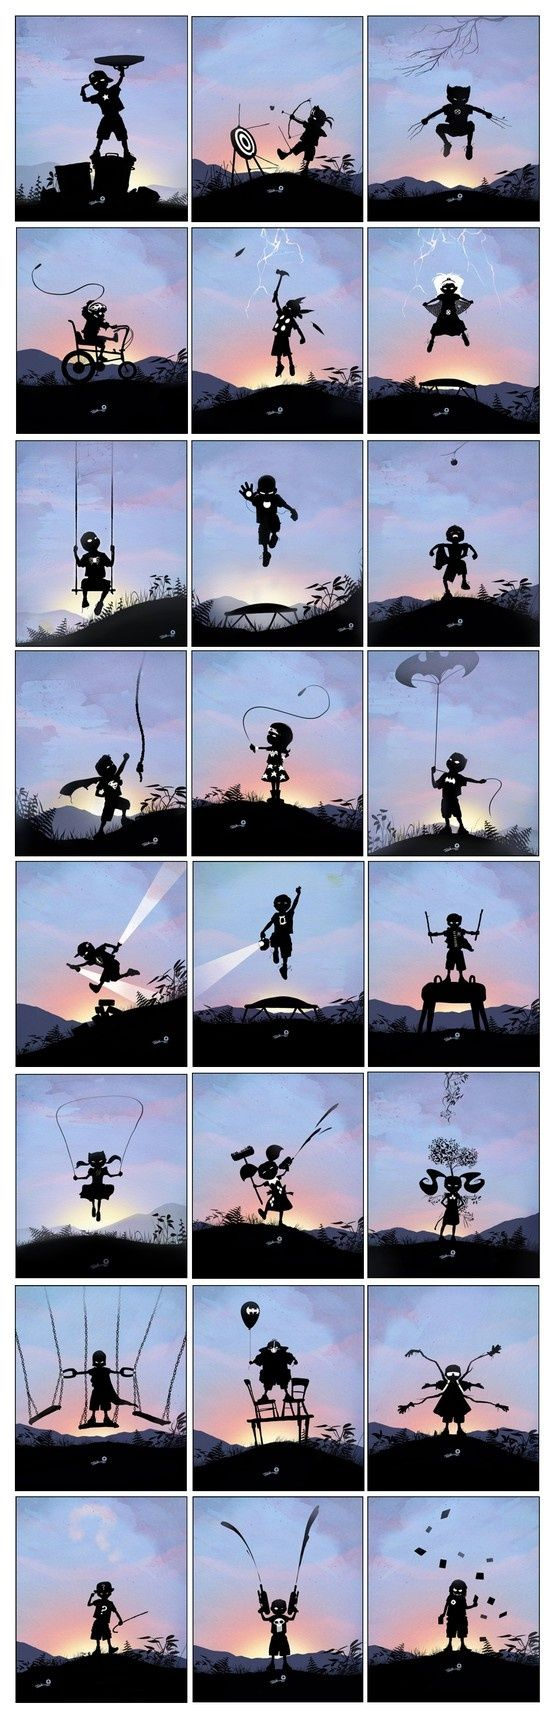 When I Grow Up I Want To Be... - Beautiful Silhouette / Noir style Illustrations by Andy Fairhurst (taken from andyfairhurst.deviantart.com) Super Hero shirts, Gadgets & Accessories, Leggings, 50%OFF. #marvel #gym #fitness #superhero #cosplay lovers